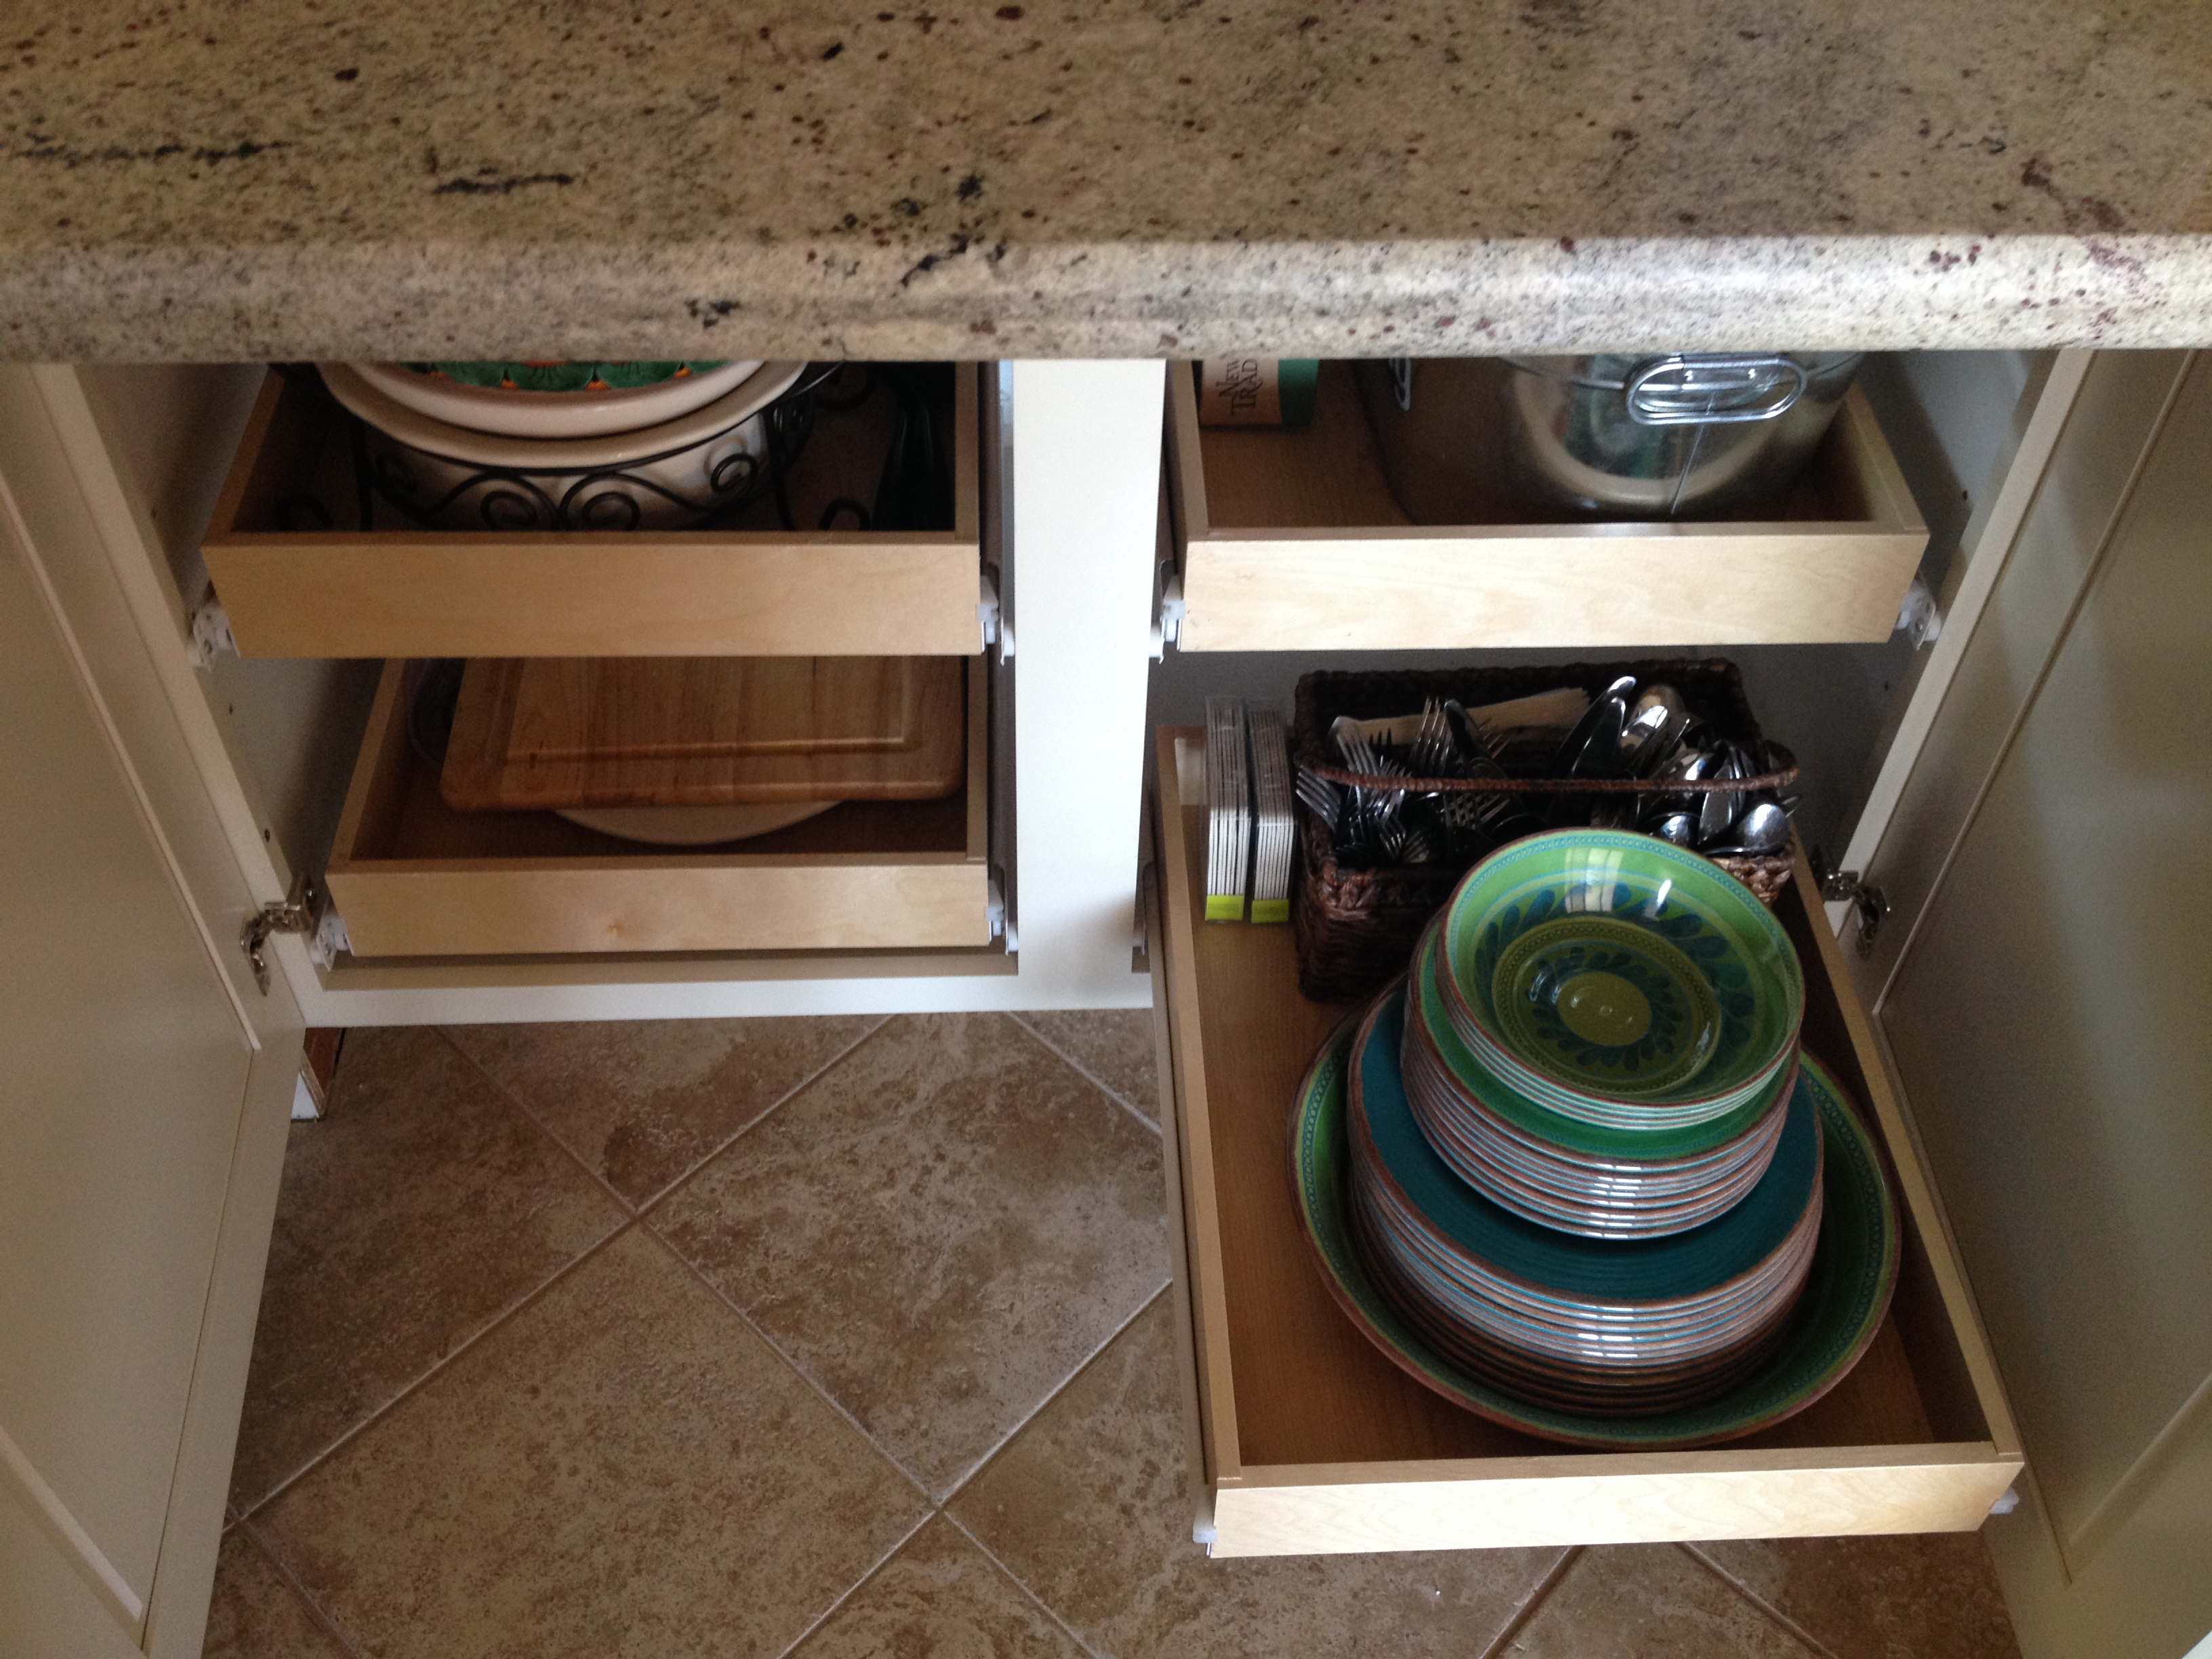 Organize your kitchen: Roll-out trays under countertop overhang at back of island | inspiredhaven.com